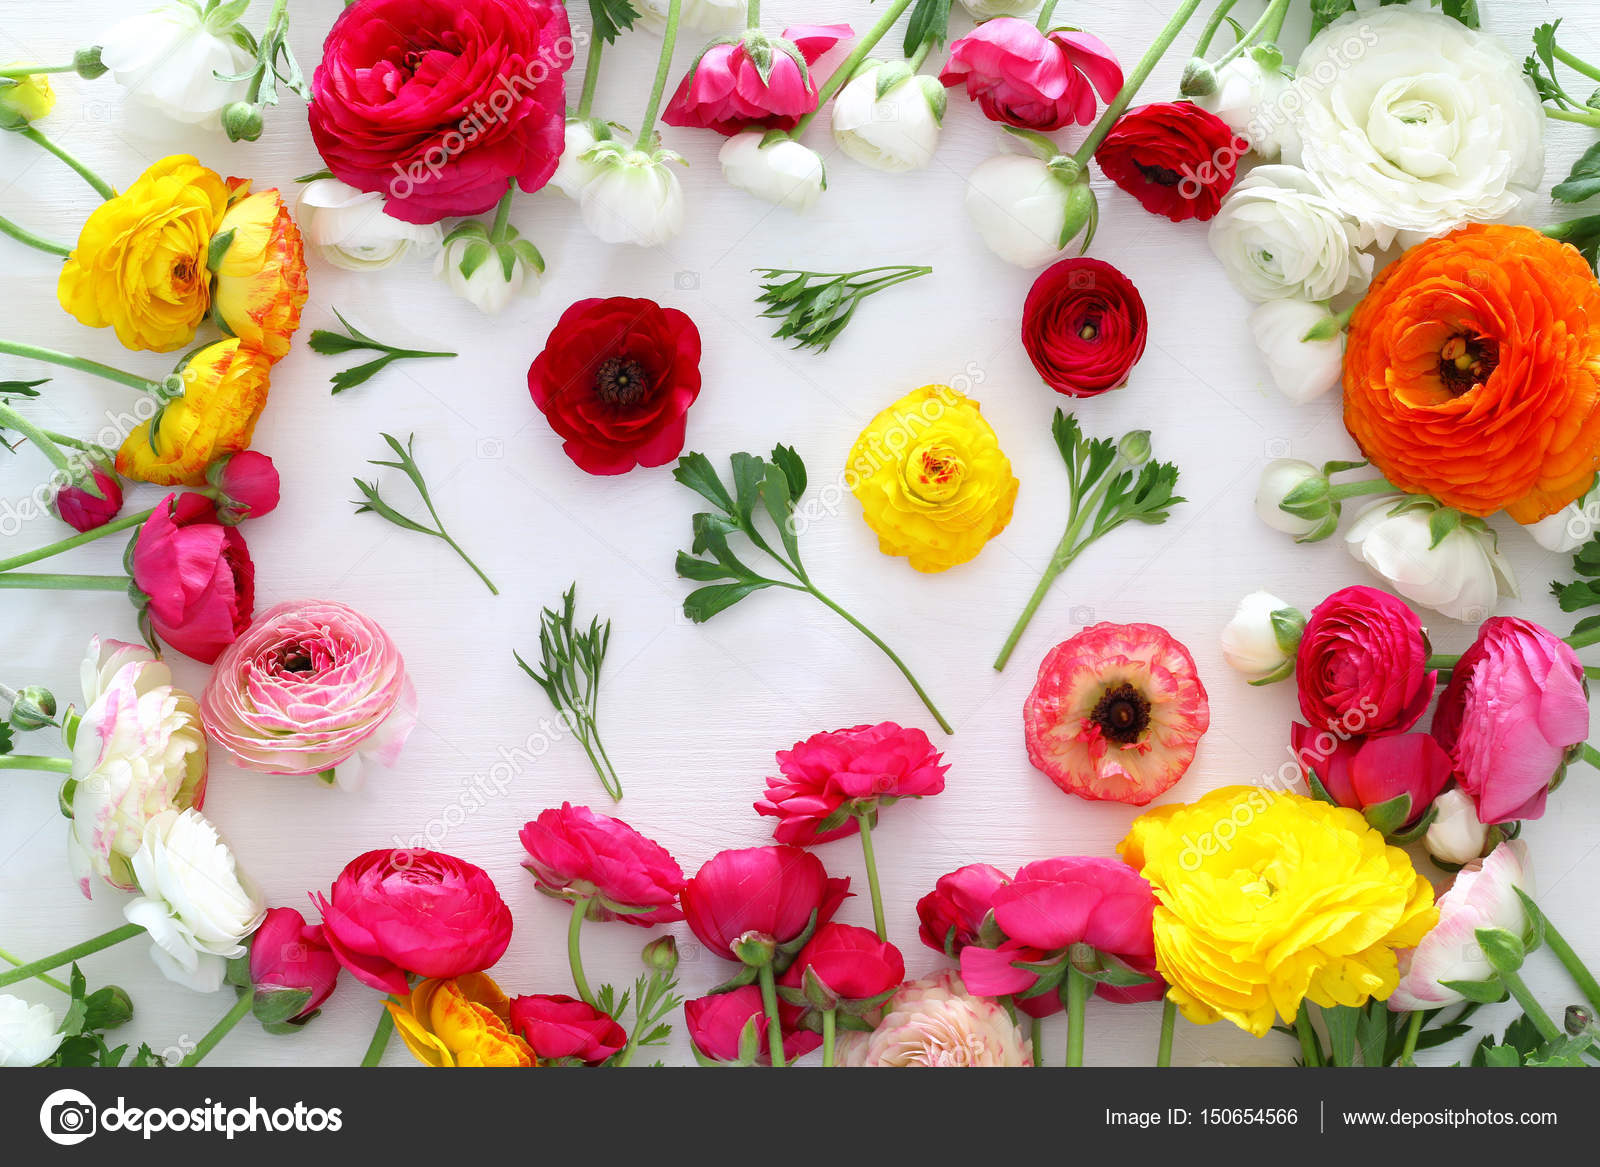 Top view of beautiful flowers arrangement stock photo tomert top view of beautiful flowers arrangement stock photo izmirmasajfo